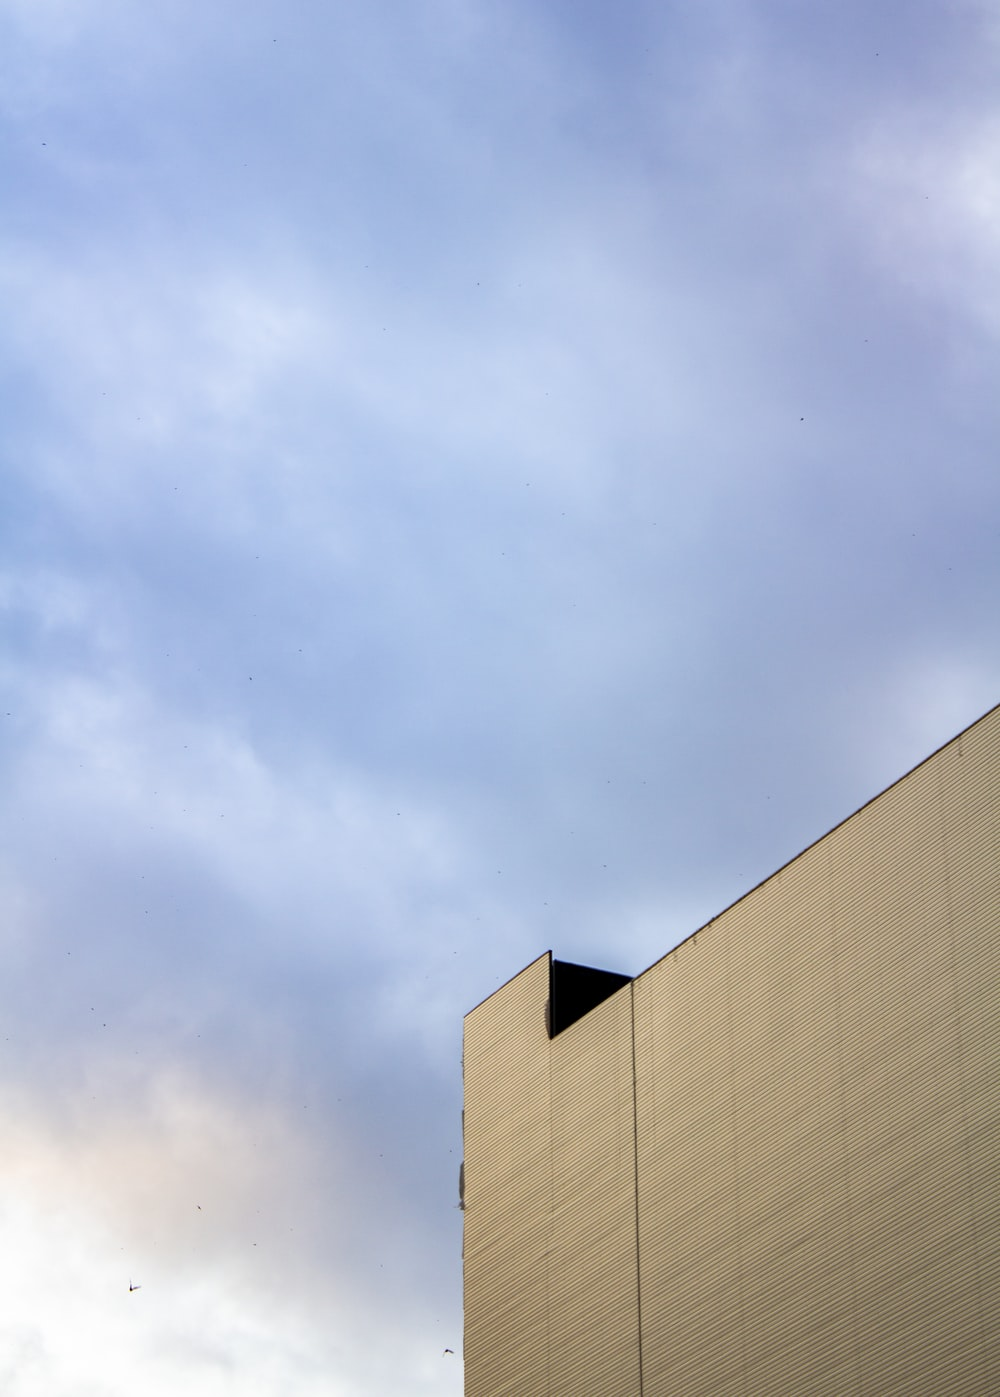 brown concrete building under white clouds during daytime